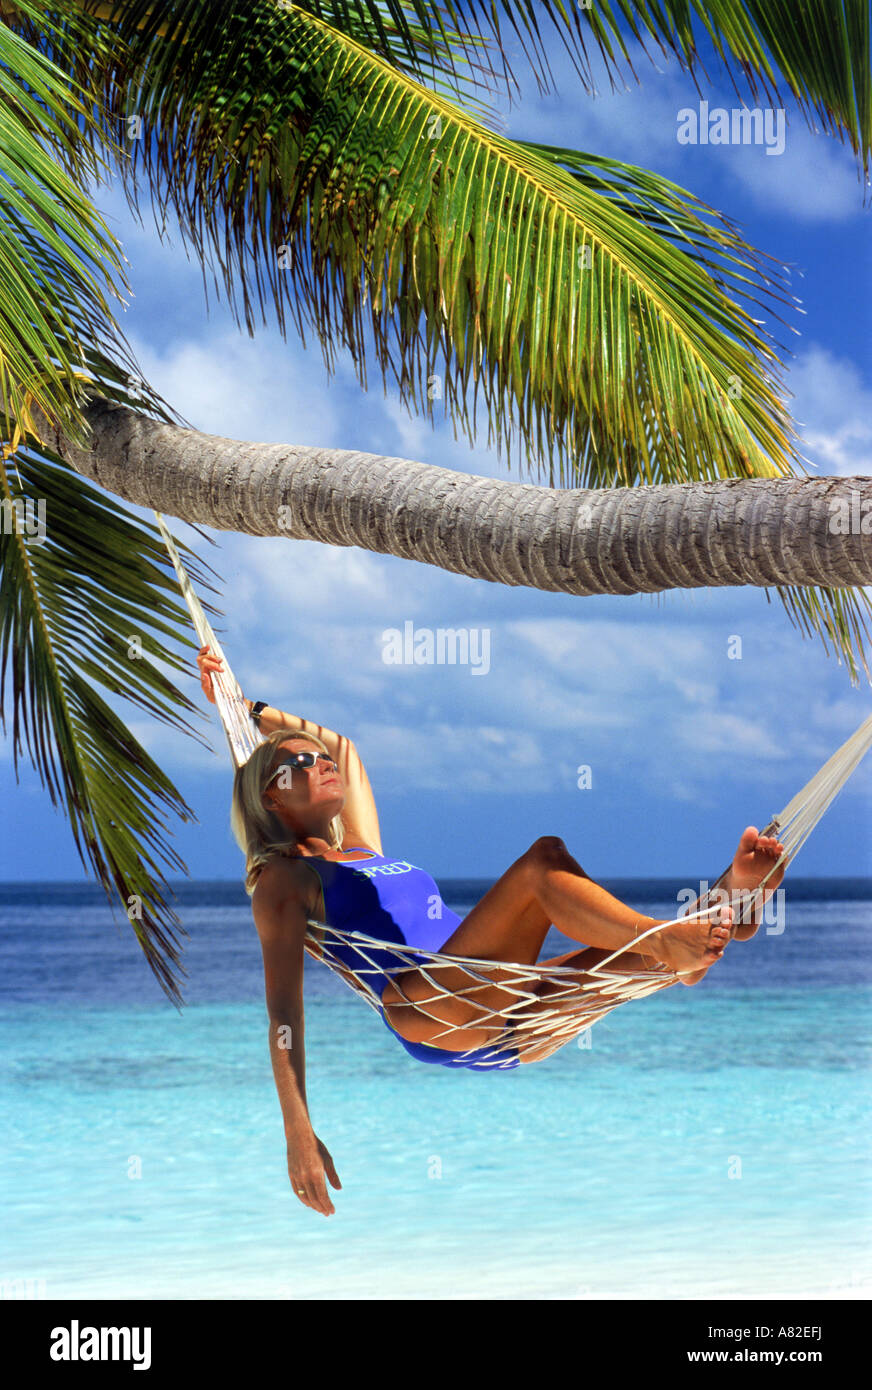 Woman with sunglasses relaxing in hammock under palm tree - Stock Image